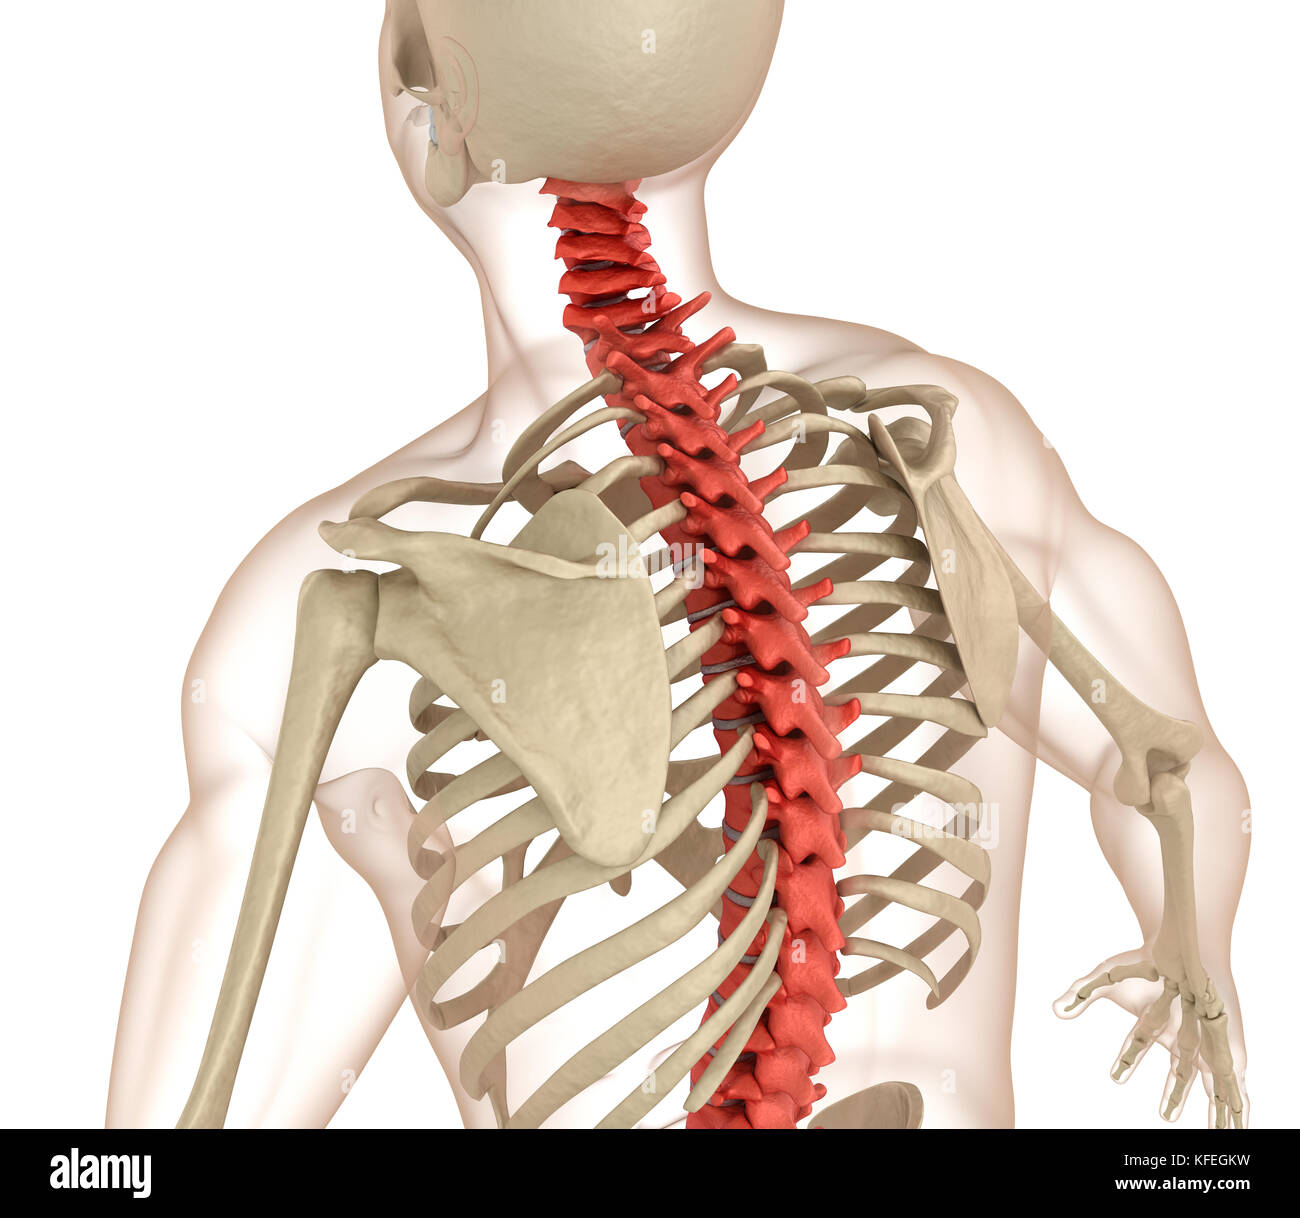 Spinal anatomy. Medically accurate 3D illustration Stock Photo ...